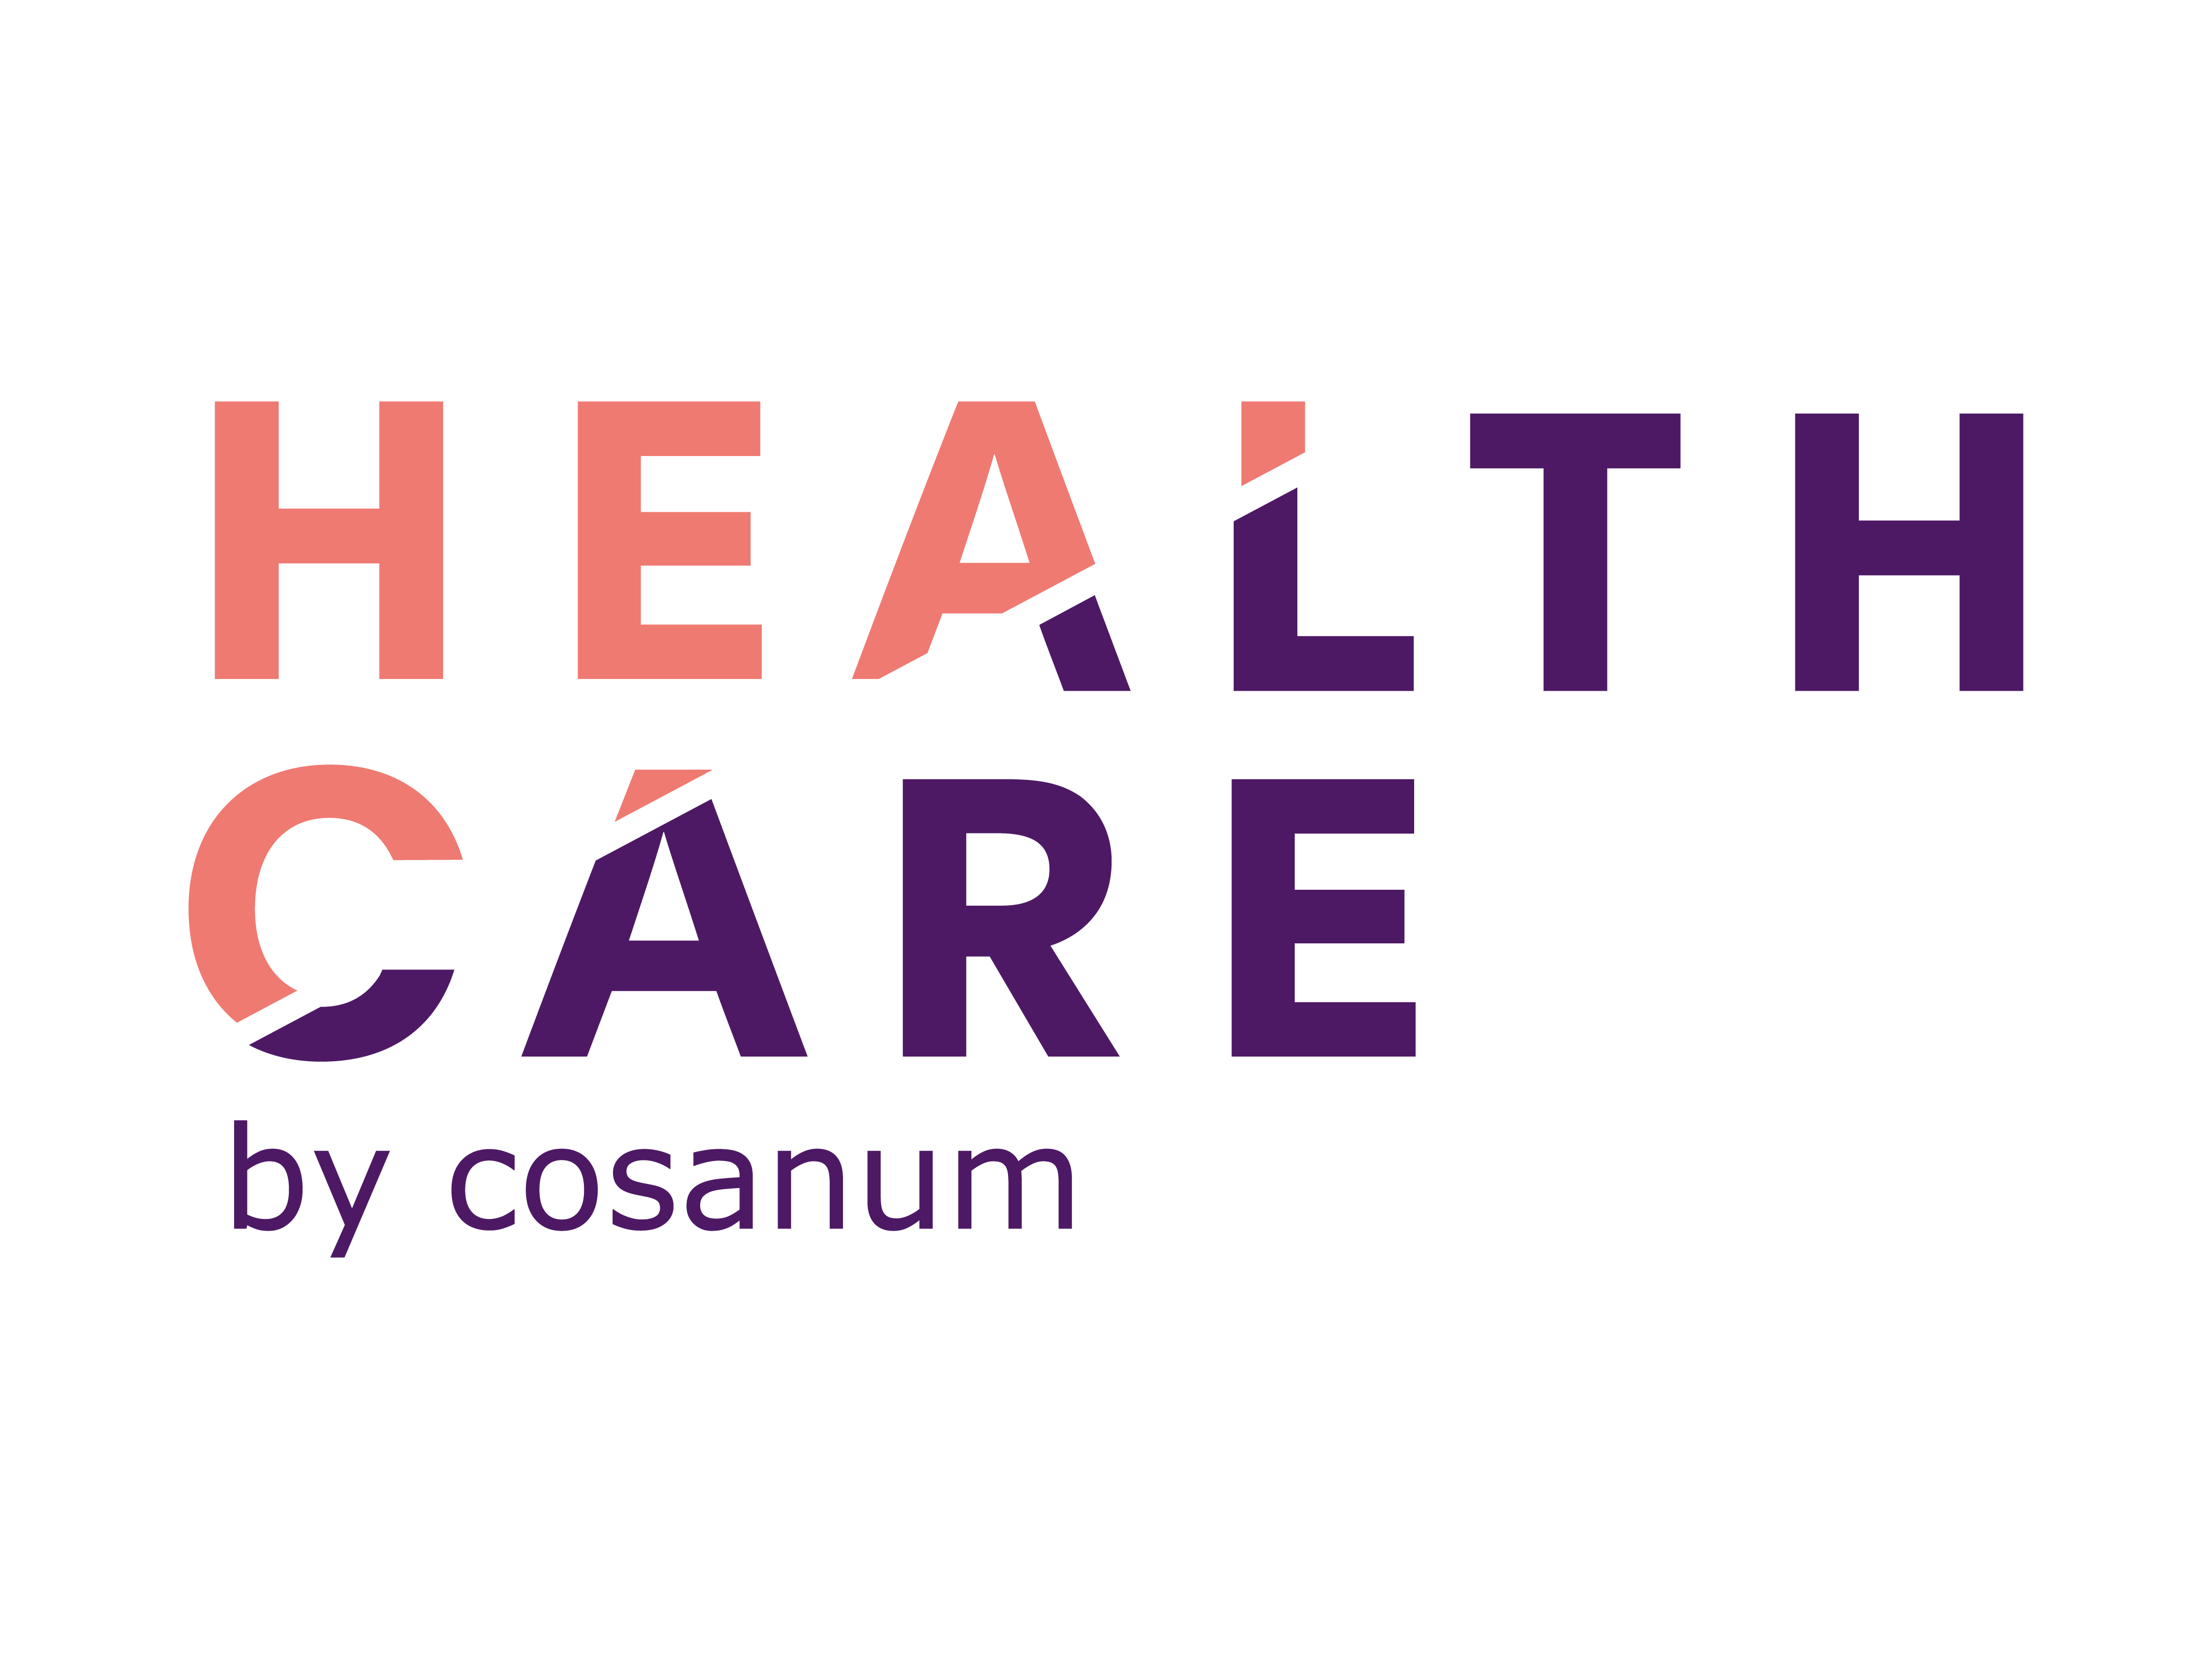 healthcare by cosanum